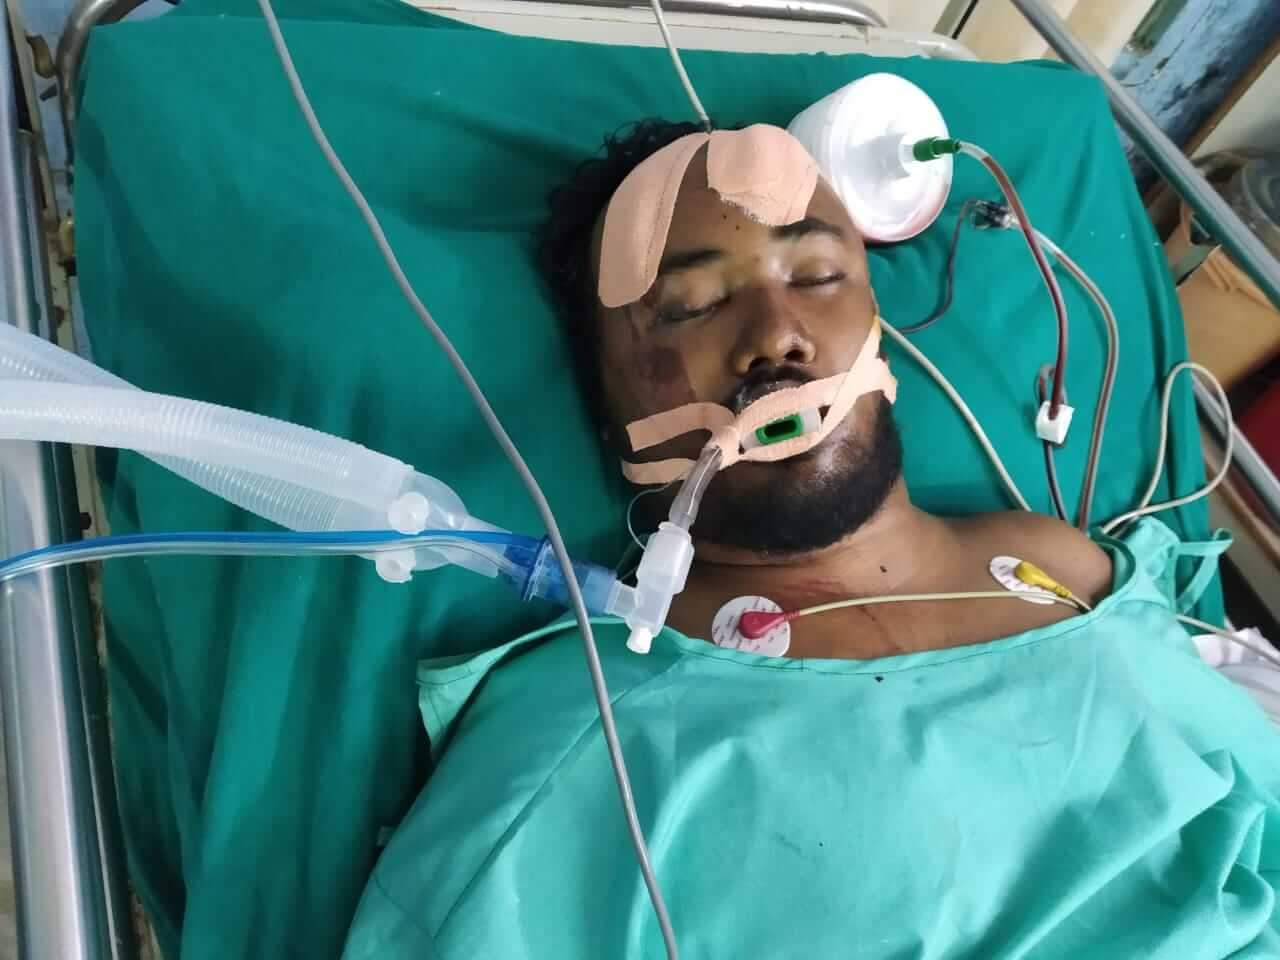 Meritorious student of Lakhimpur injured in road mishap fighting for life, mother seeks financial help